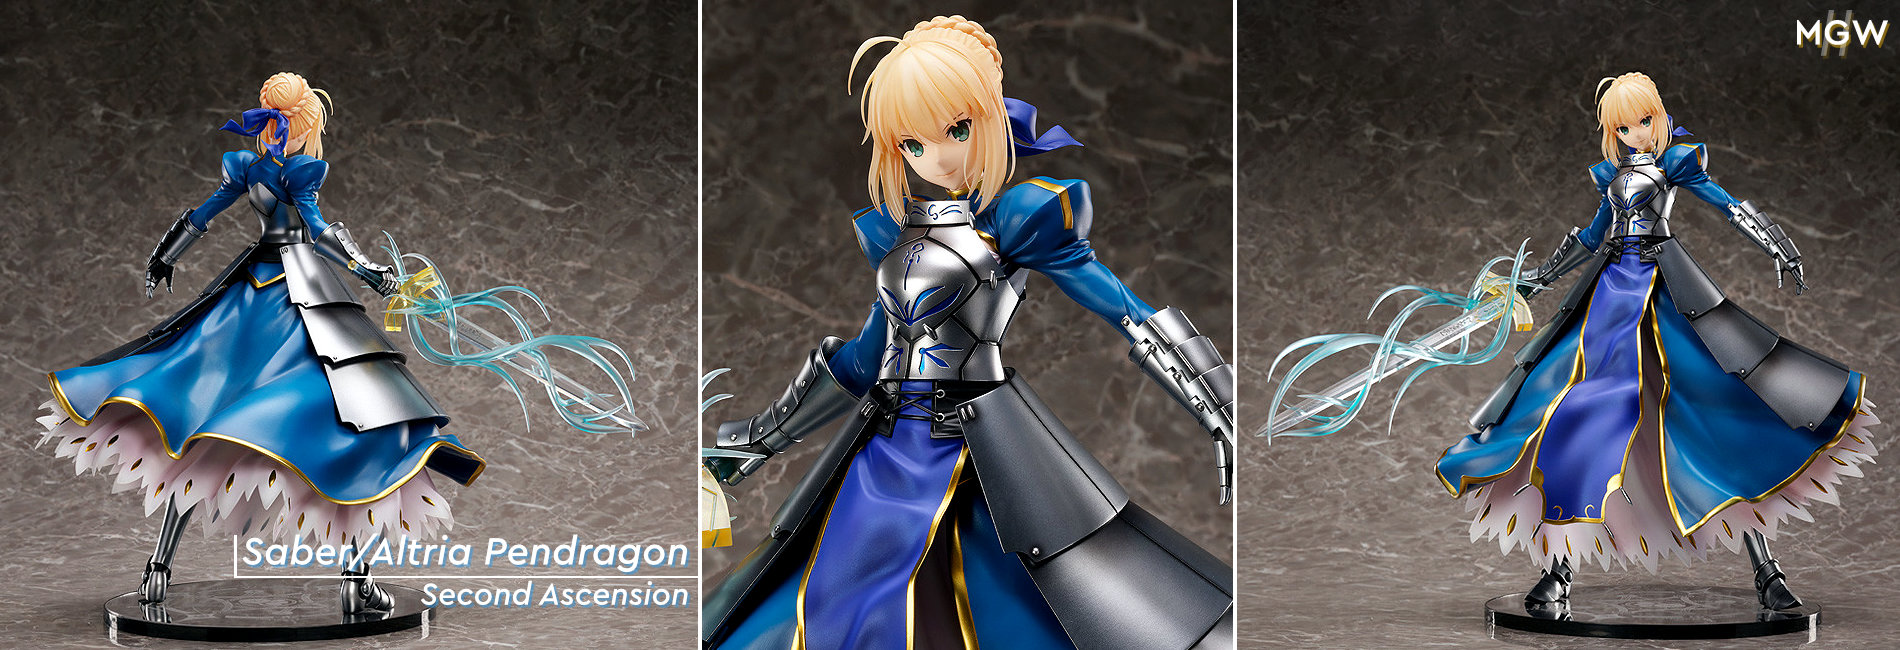 Saber Altria Pendragon Second Ascension by FREEing from Fate Grand Order MyGrailWatch Anime Figure Guide